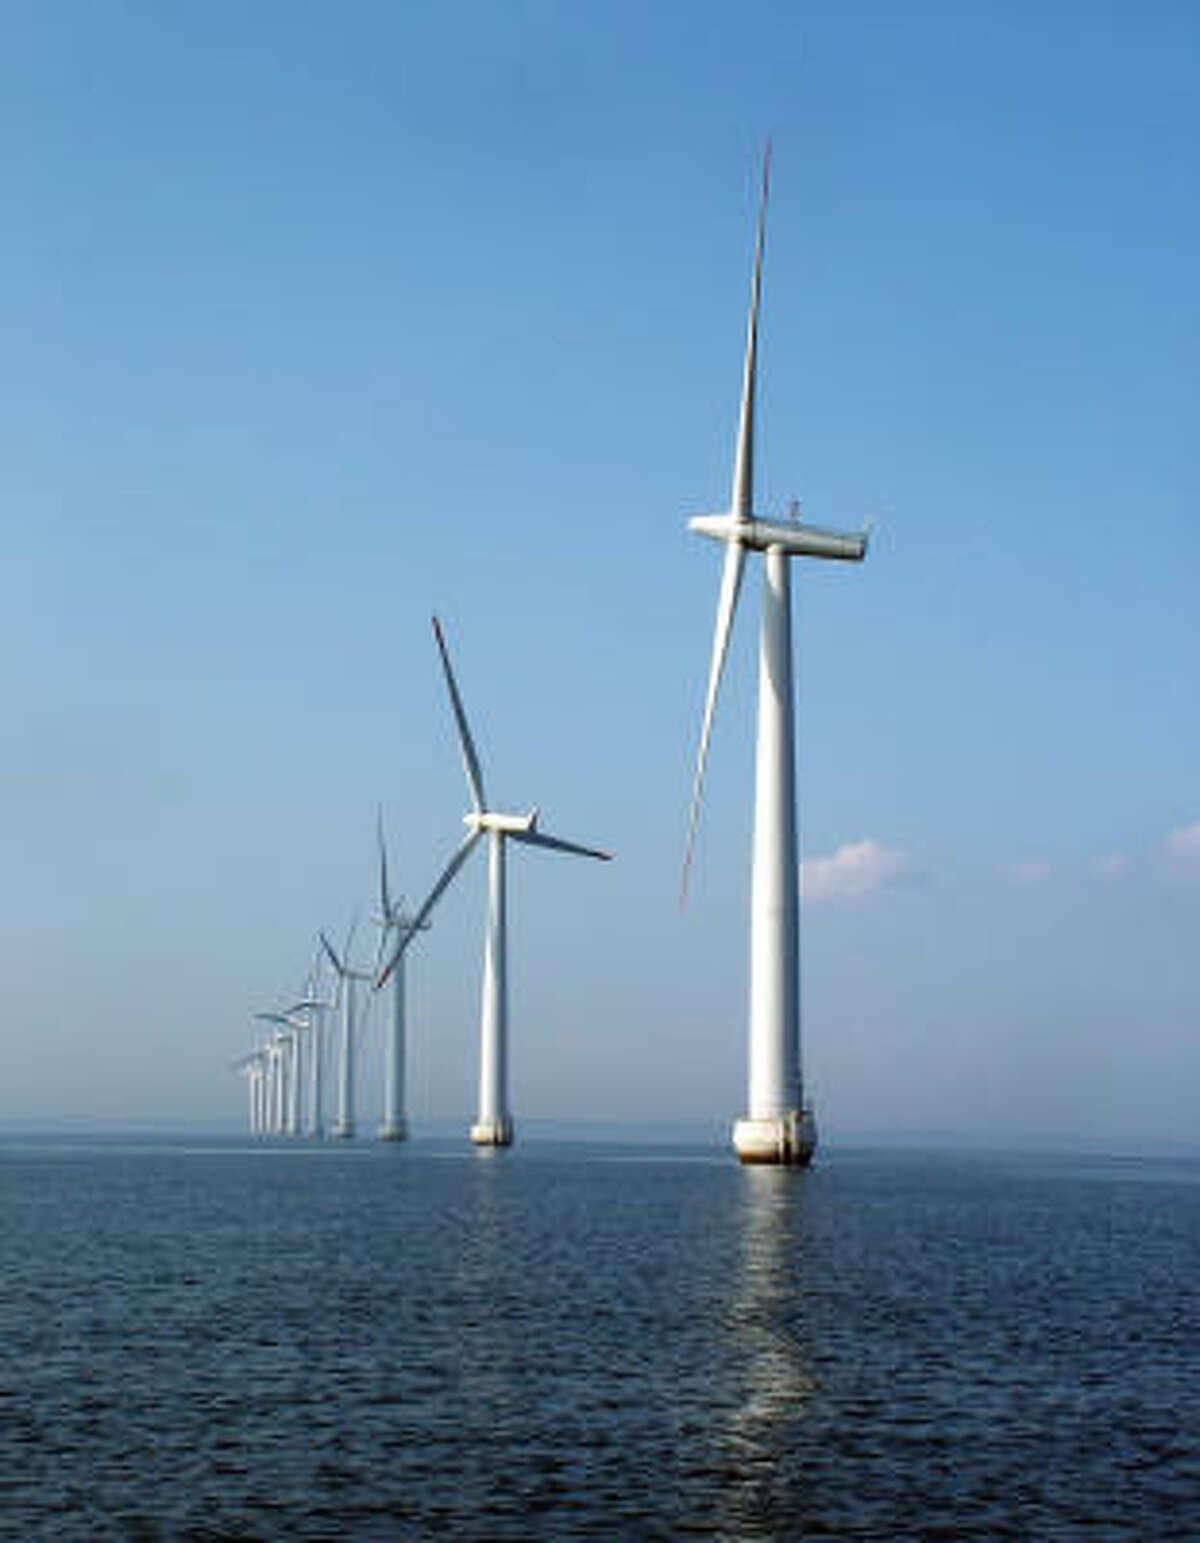 OFFSHORE: Offshore wind power is a growing source of energy, which will lead to more jobs in the field.